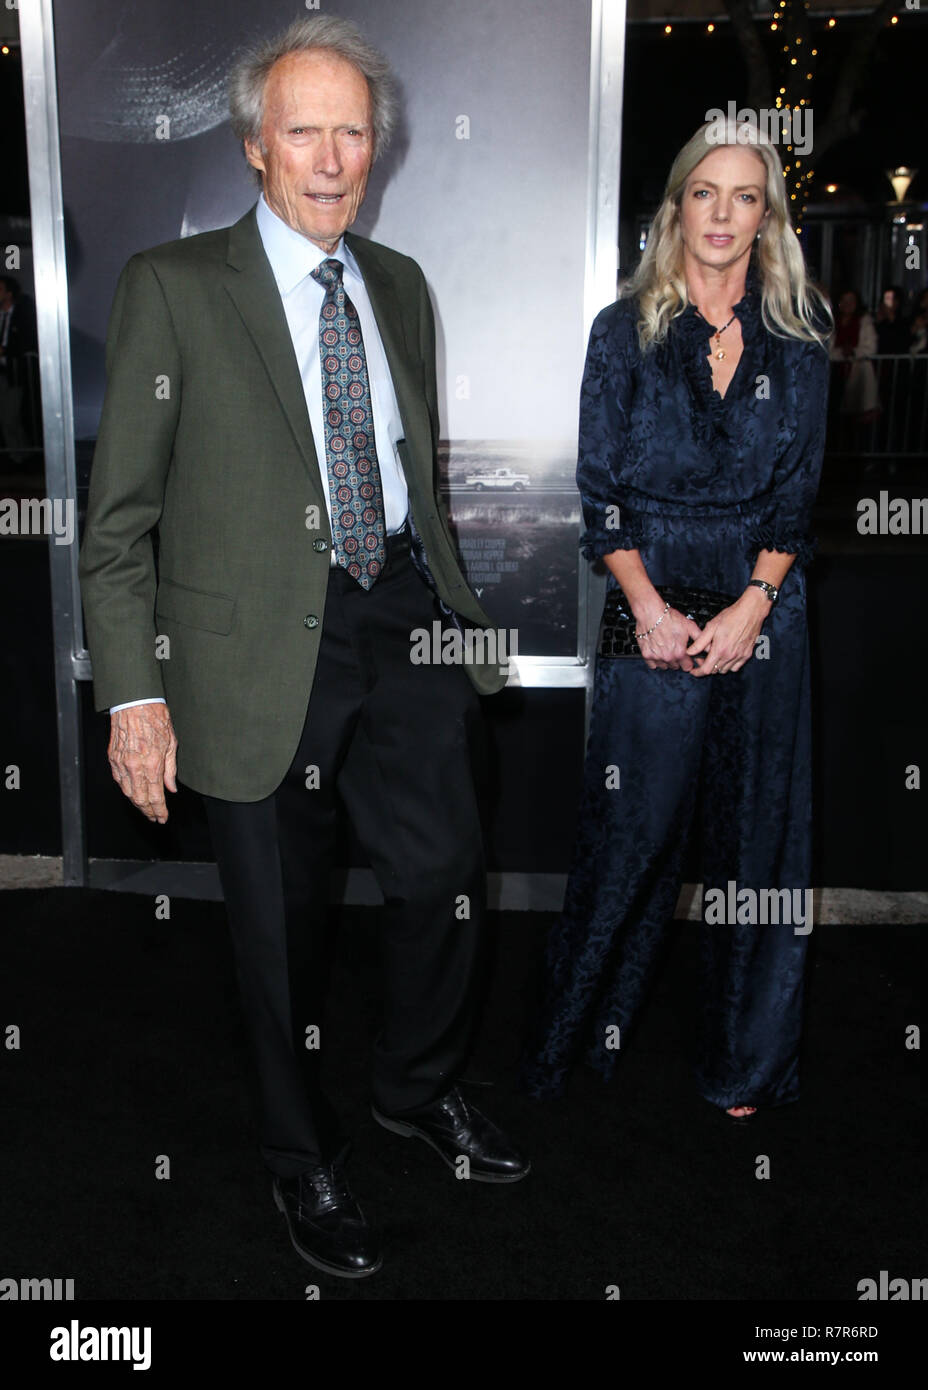 "WESTWOOD, Los Angeles, CA, Stati Uniti d'America - 10 dicembre: Direttore/attore Clint Eastwood e fidanzata Christina Sandera arrivare presso il Los Angeles Premiere della Warner Bros Foto 'Il mulo"" tenutasi presso il Regency Village Theatre sul dicembre 10, 2018 a Westwood, Los Angeles, California, Stati Uniti. (Foto di Image Press Agency) Foto Stock"